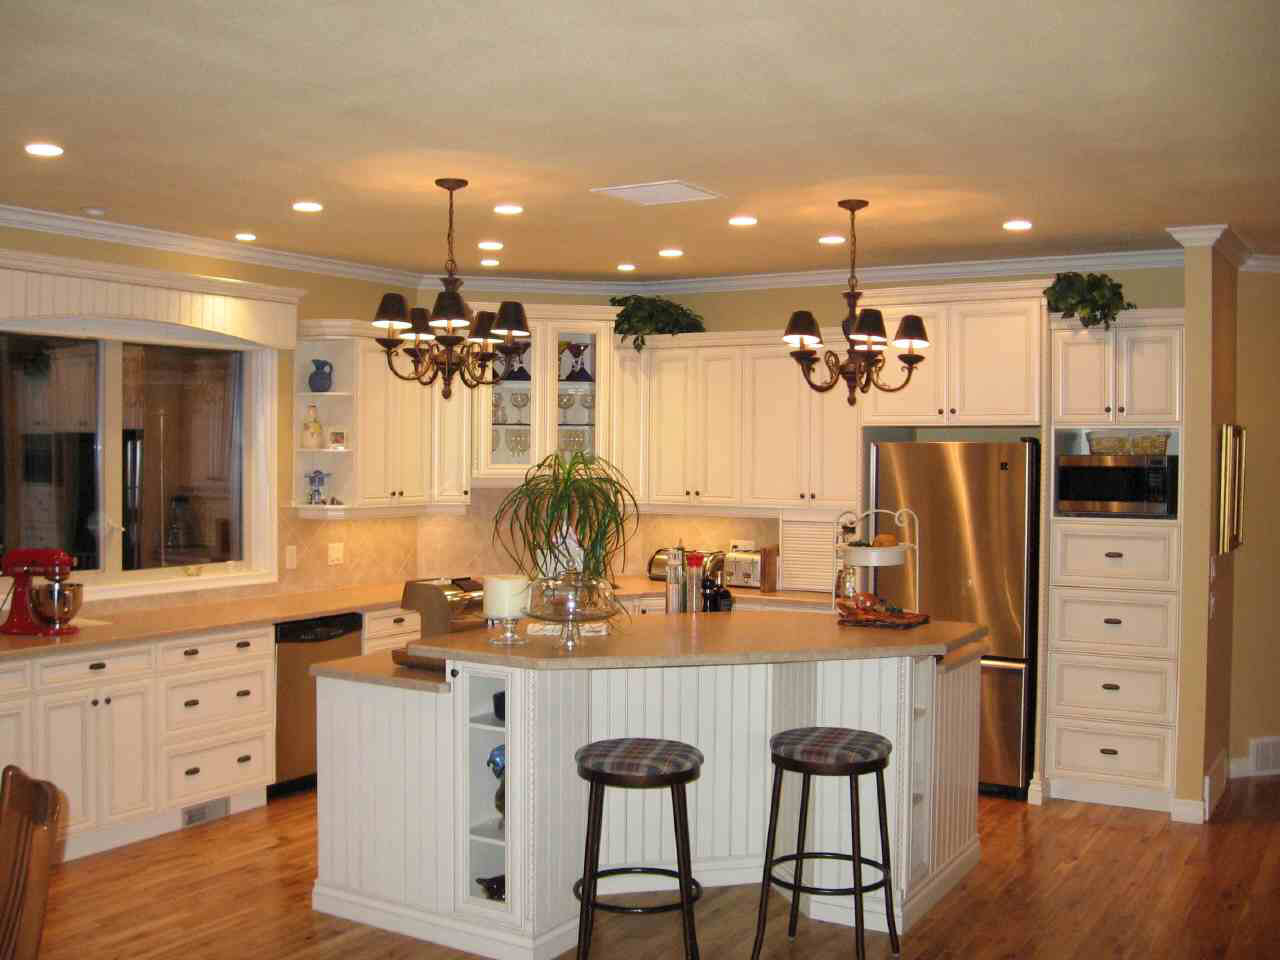 Beautiful Kitchen Island Design Ideas for Small Kitchens 1280 x 960 · 109 kB · jpeg